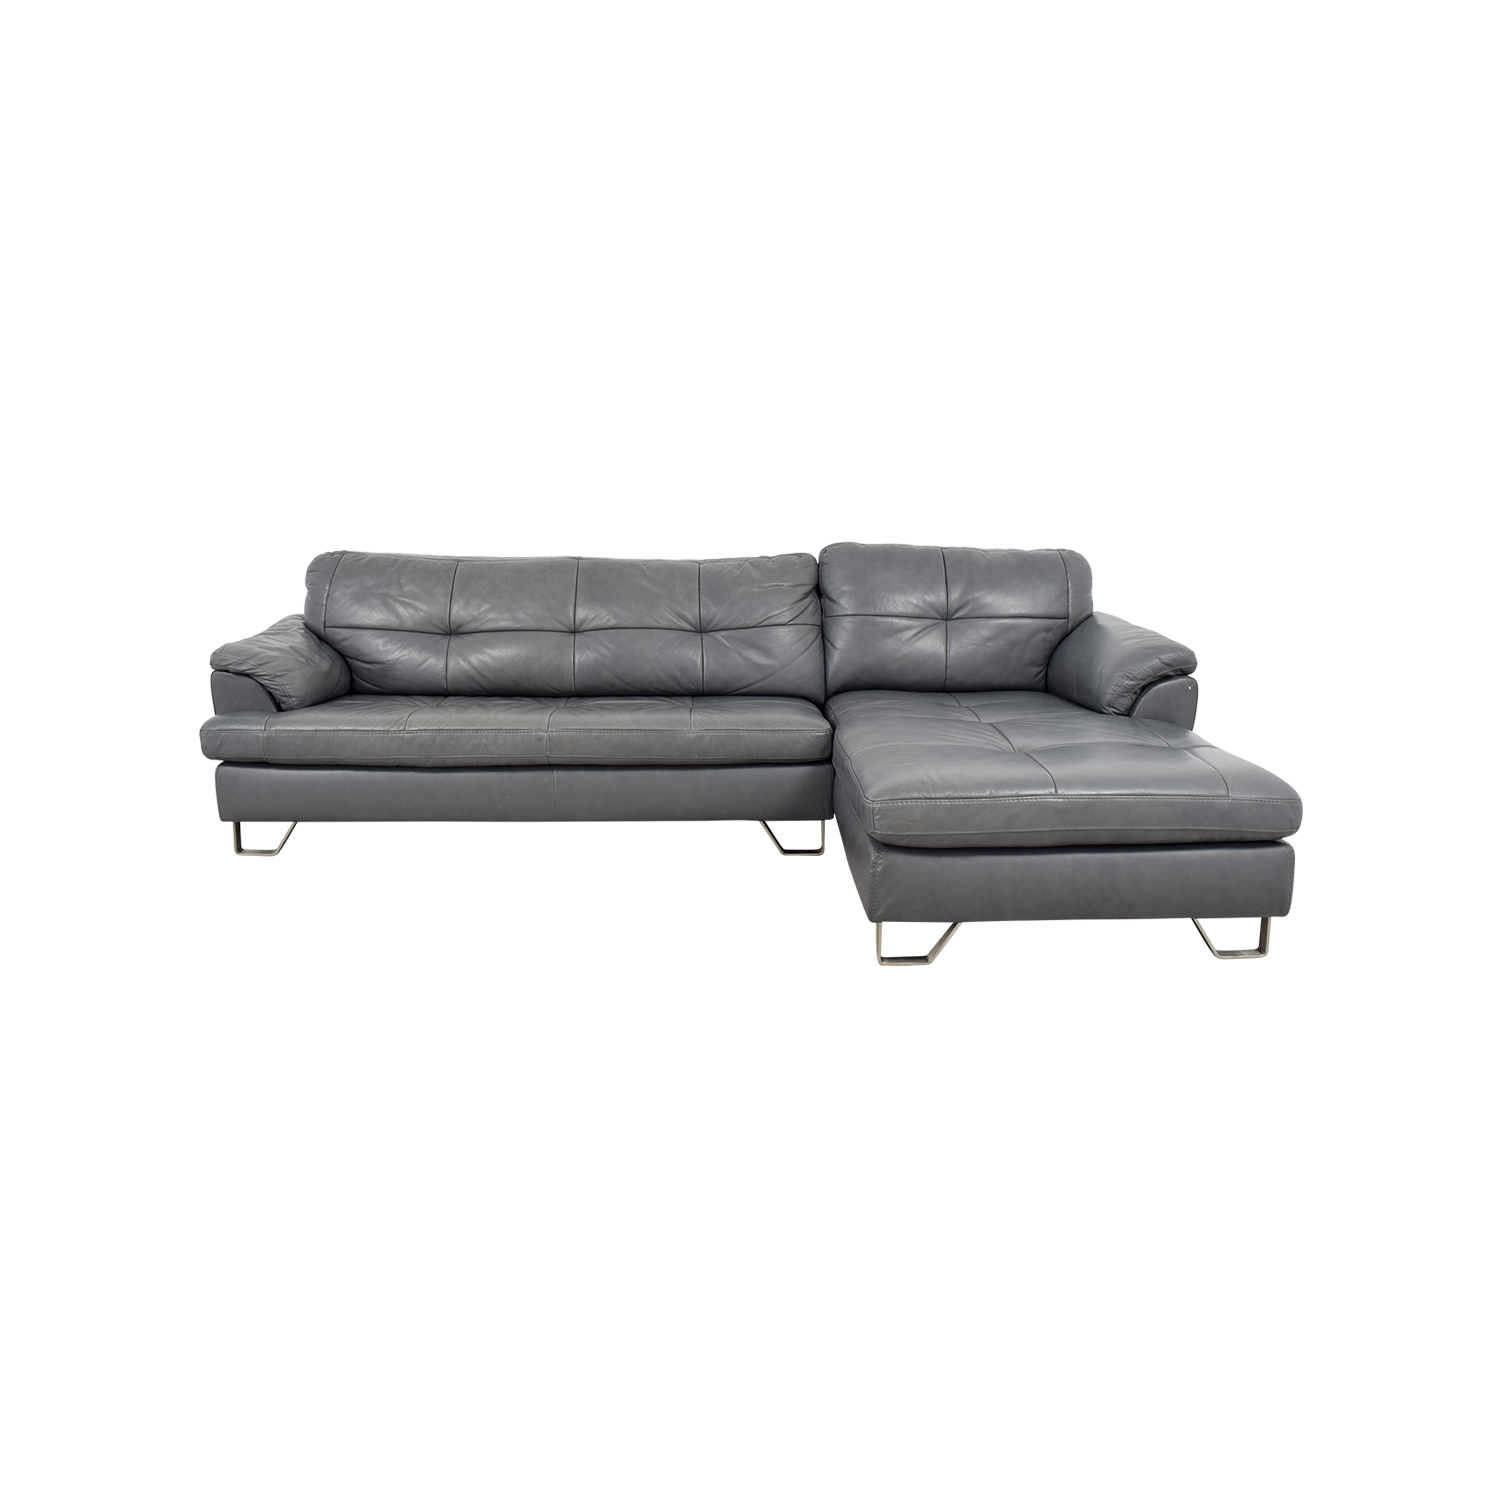 54% OFF Ashley Furniture Ashley Furniture Gray Tufted Sectional